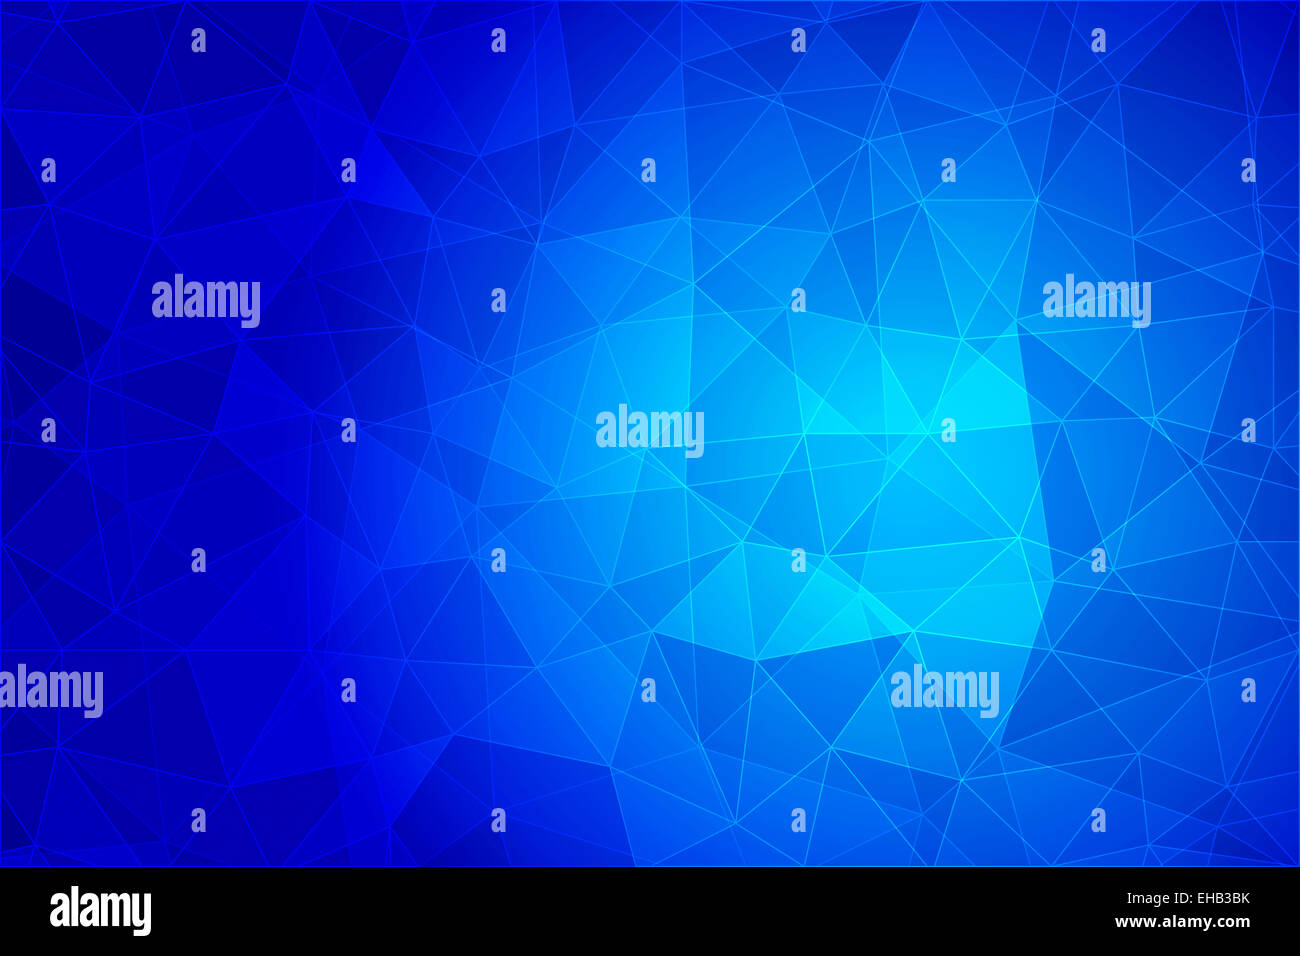 Abstract geometric background with triangular polygons, low poly style illustration - Stock Image